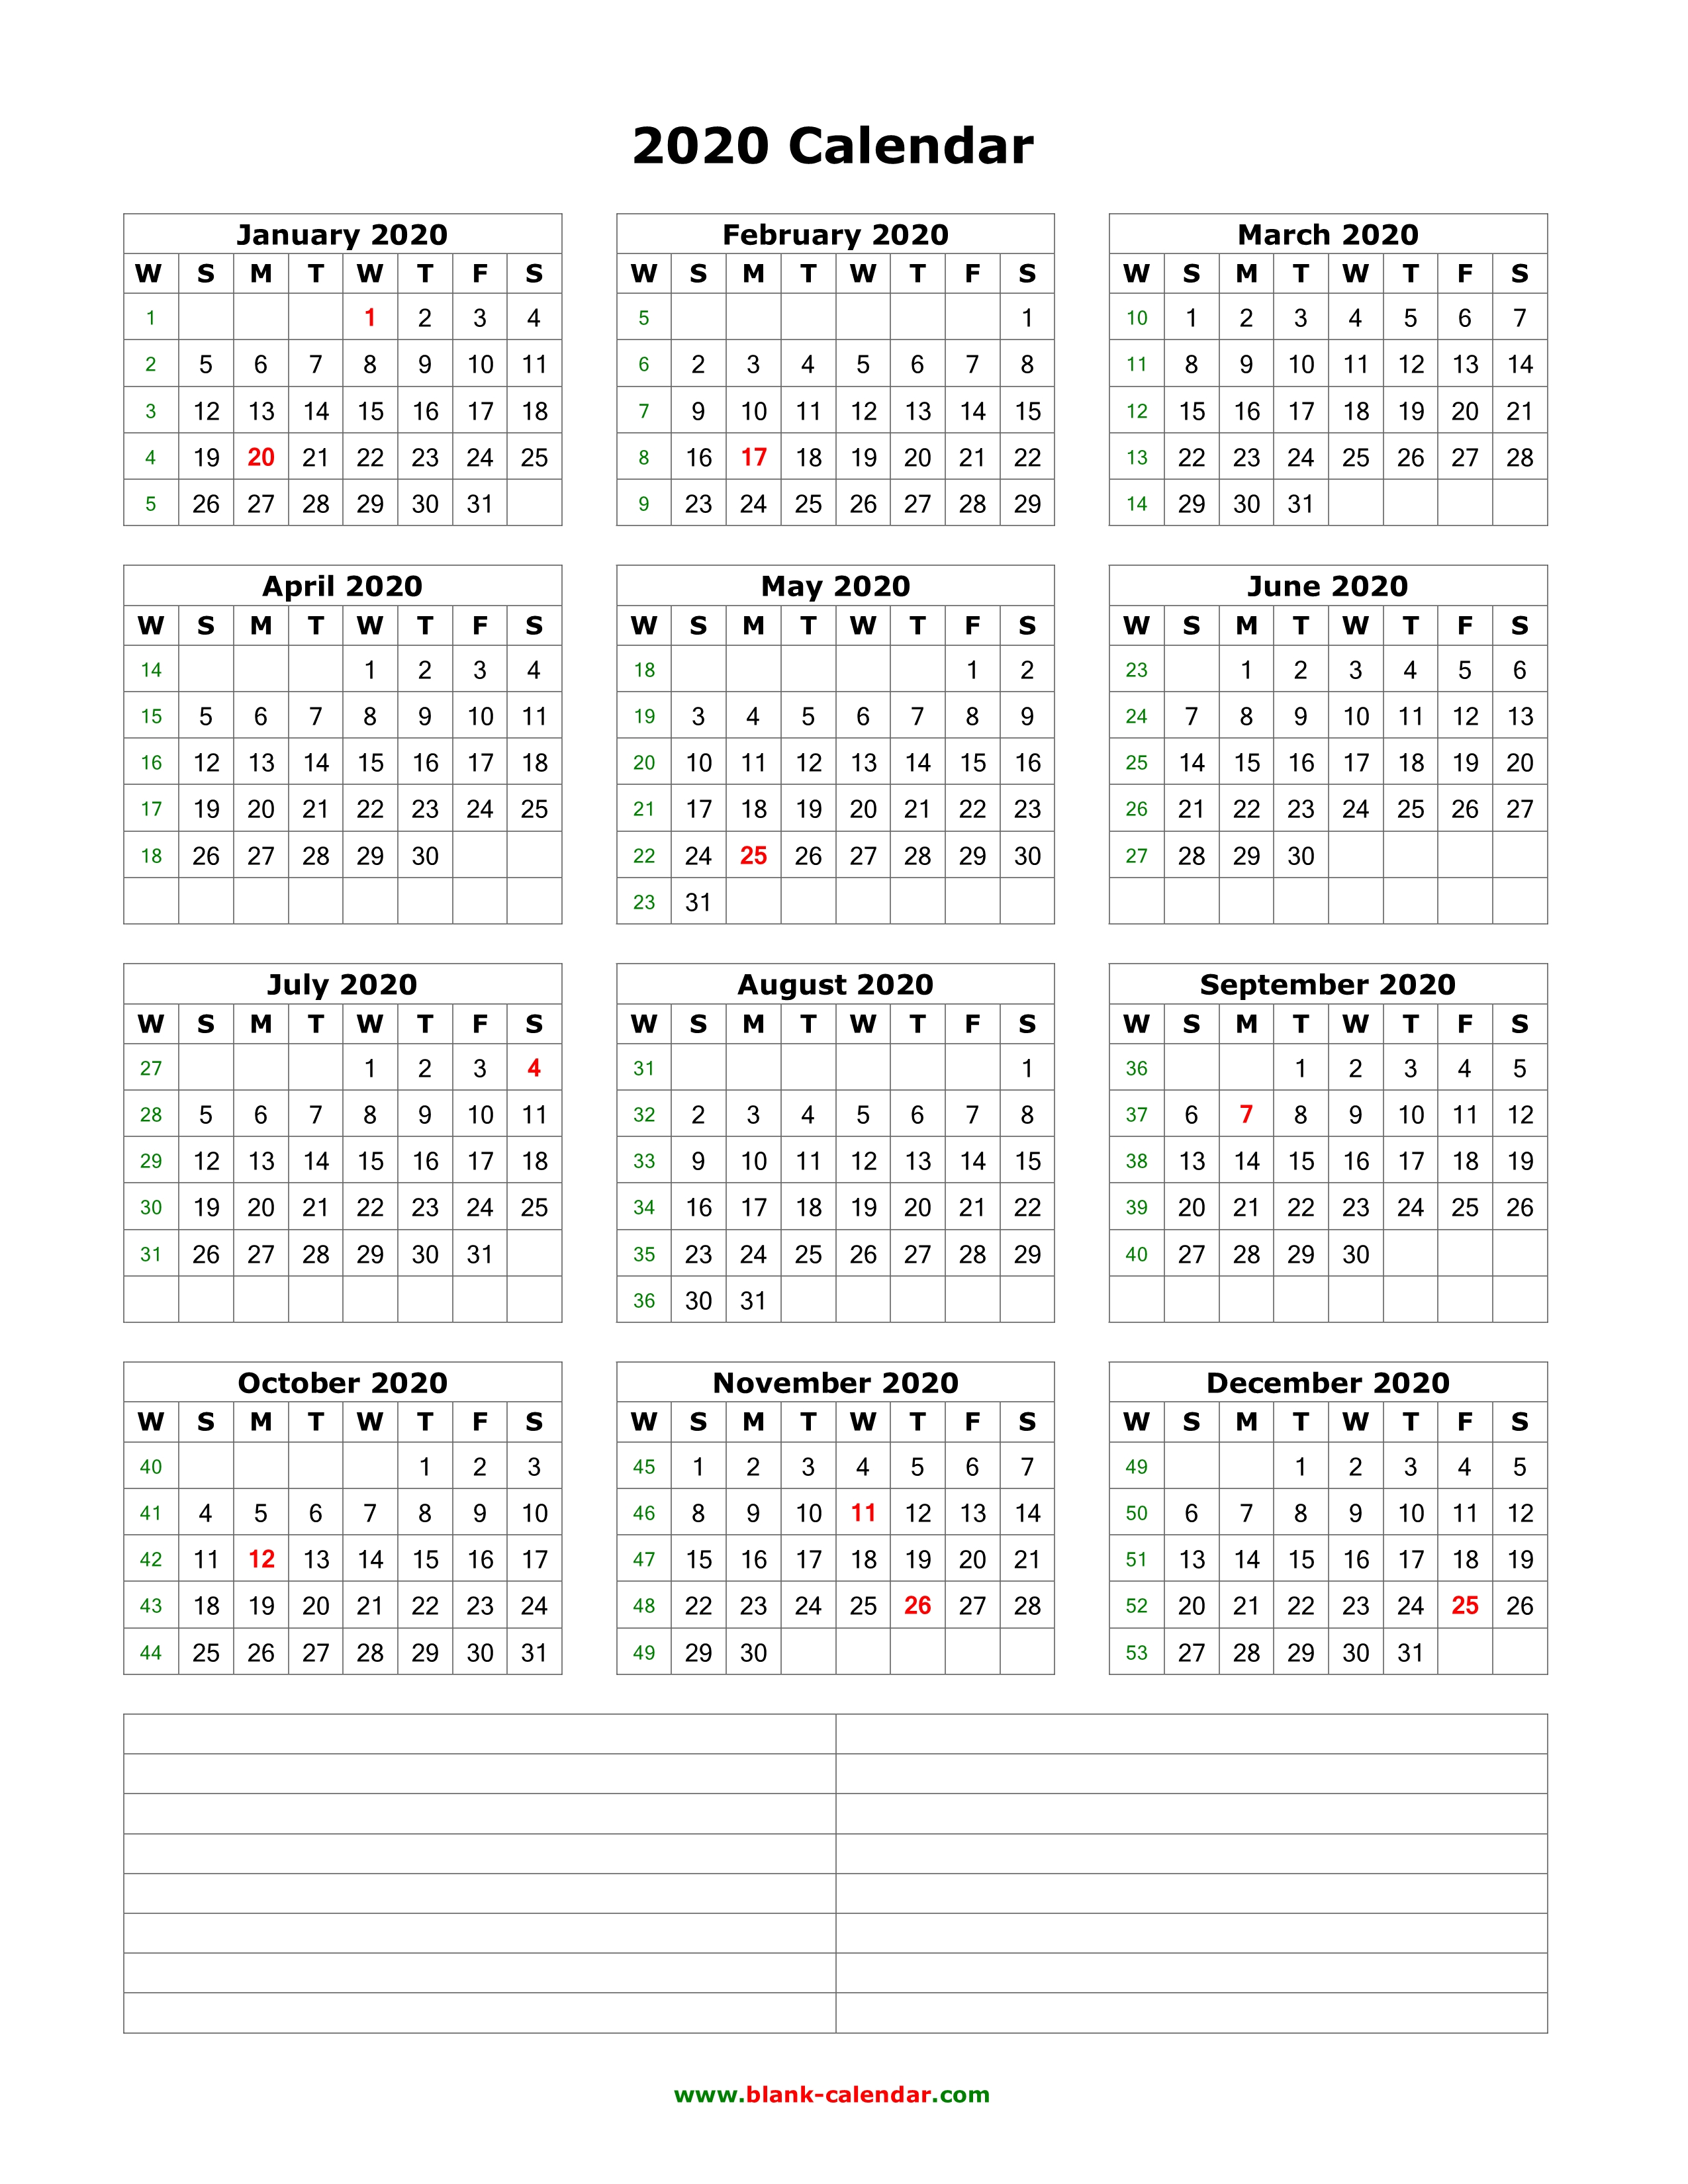 12 Month Printable Calendar 2020 Download Blank Calendar 2020 with Space for Notes (12 months on